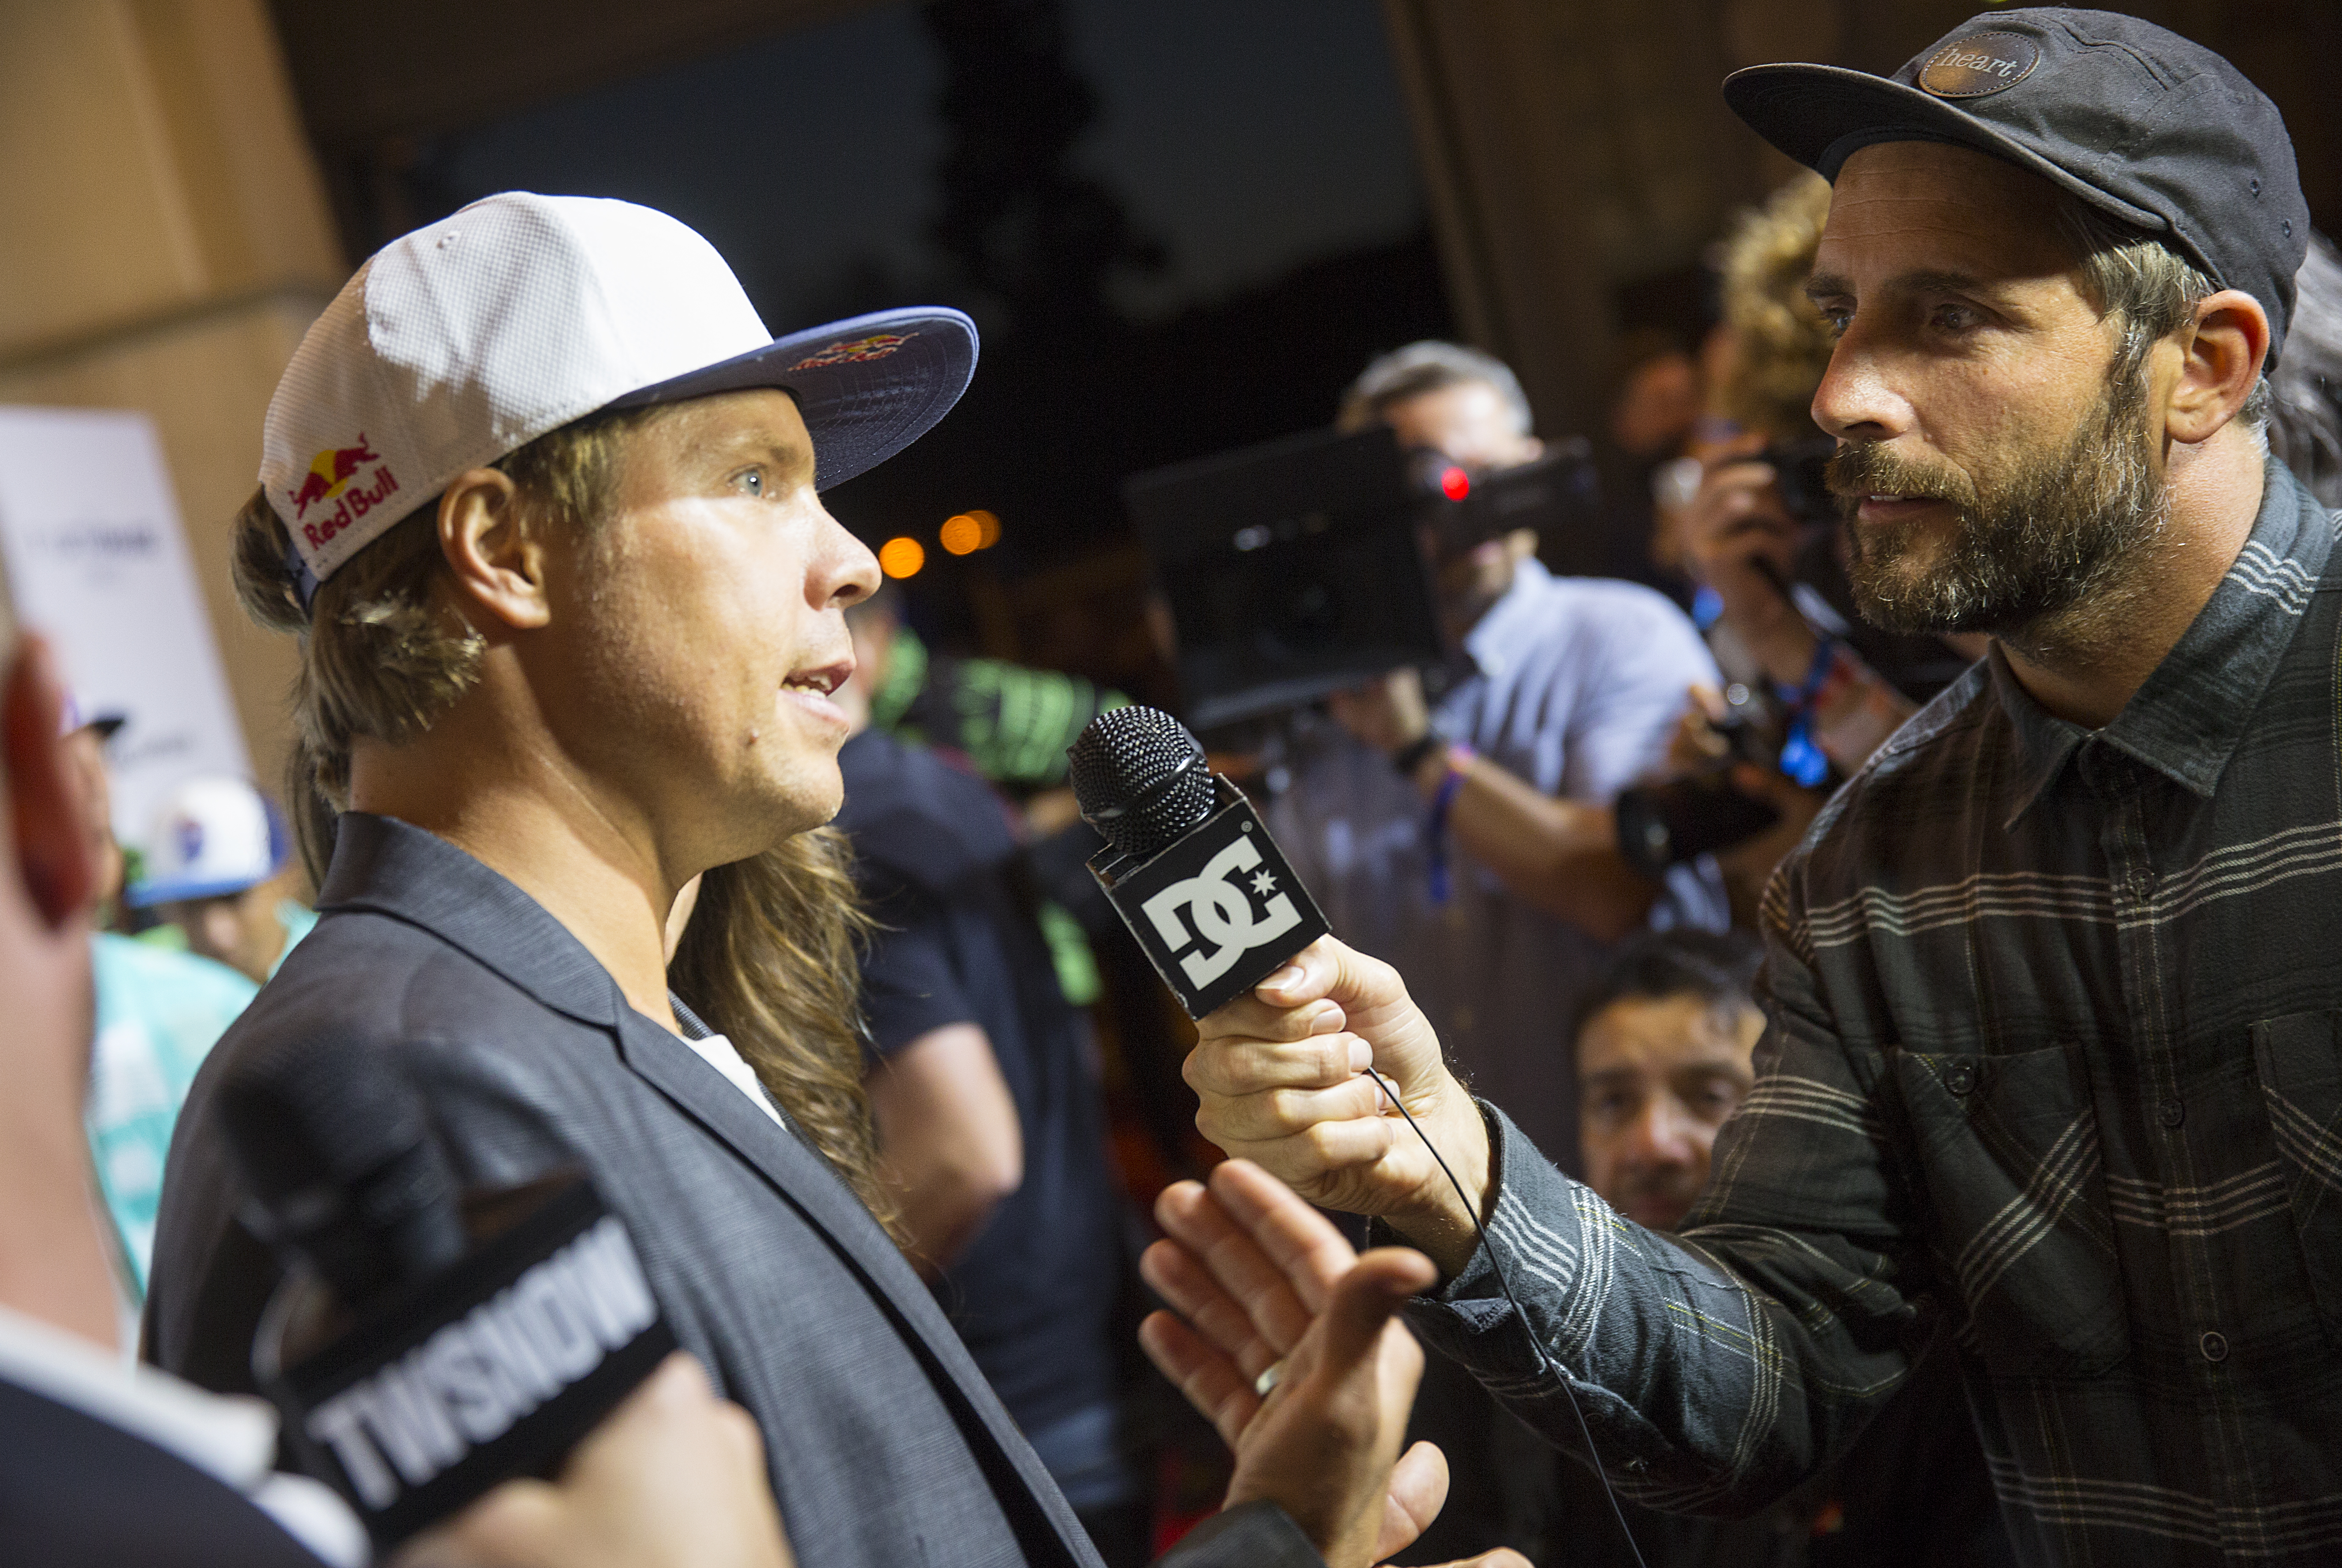 Travis Rice talks to the media at the world premiere of The Fourth Phase, Travis Rice's follow-up to the award-winning Art Of Flight, screened at the Shrine Auditorium in Los Angeles, CA, USA on 8 September, 2016.